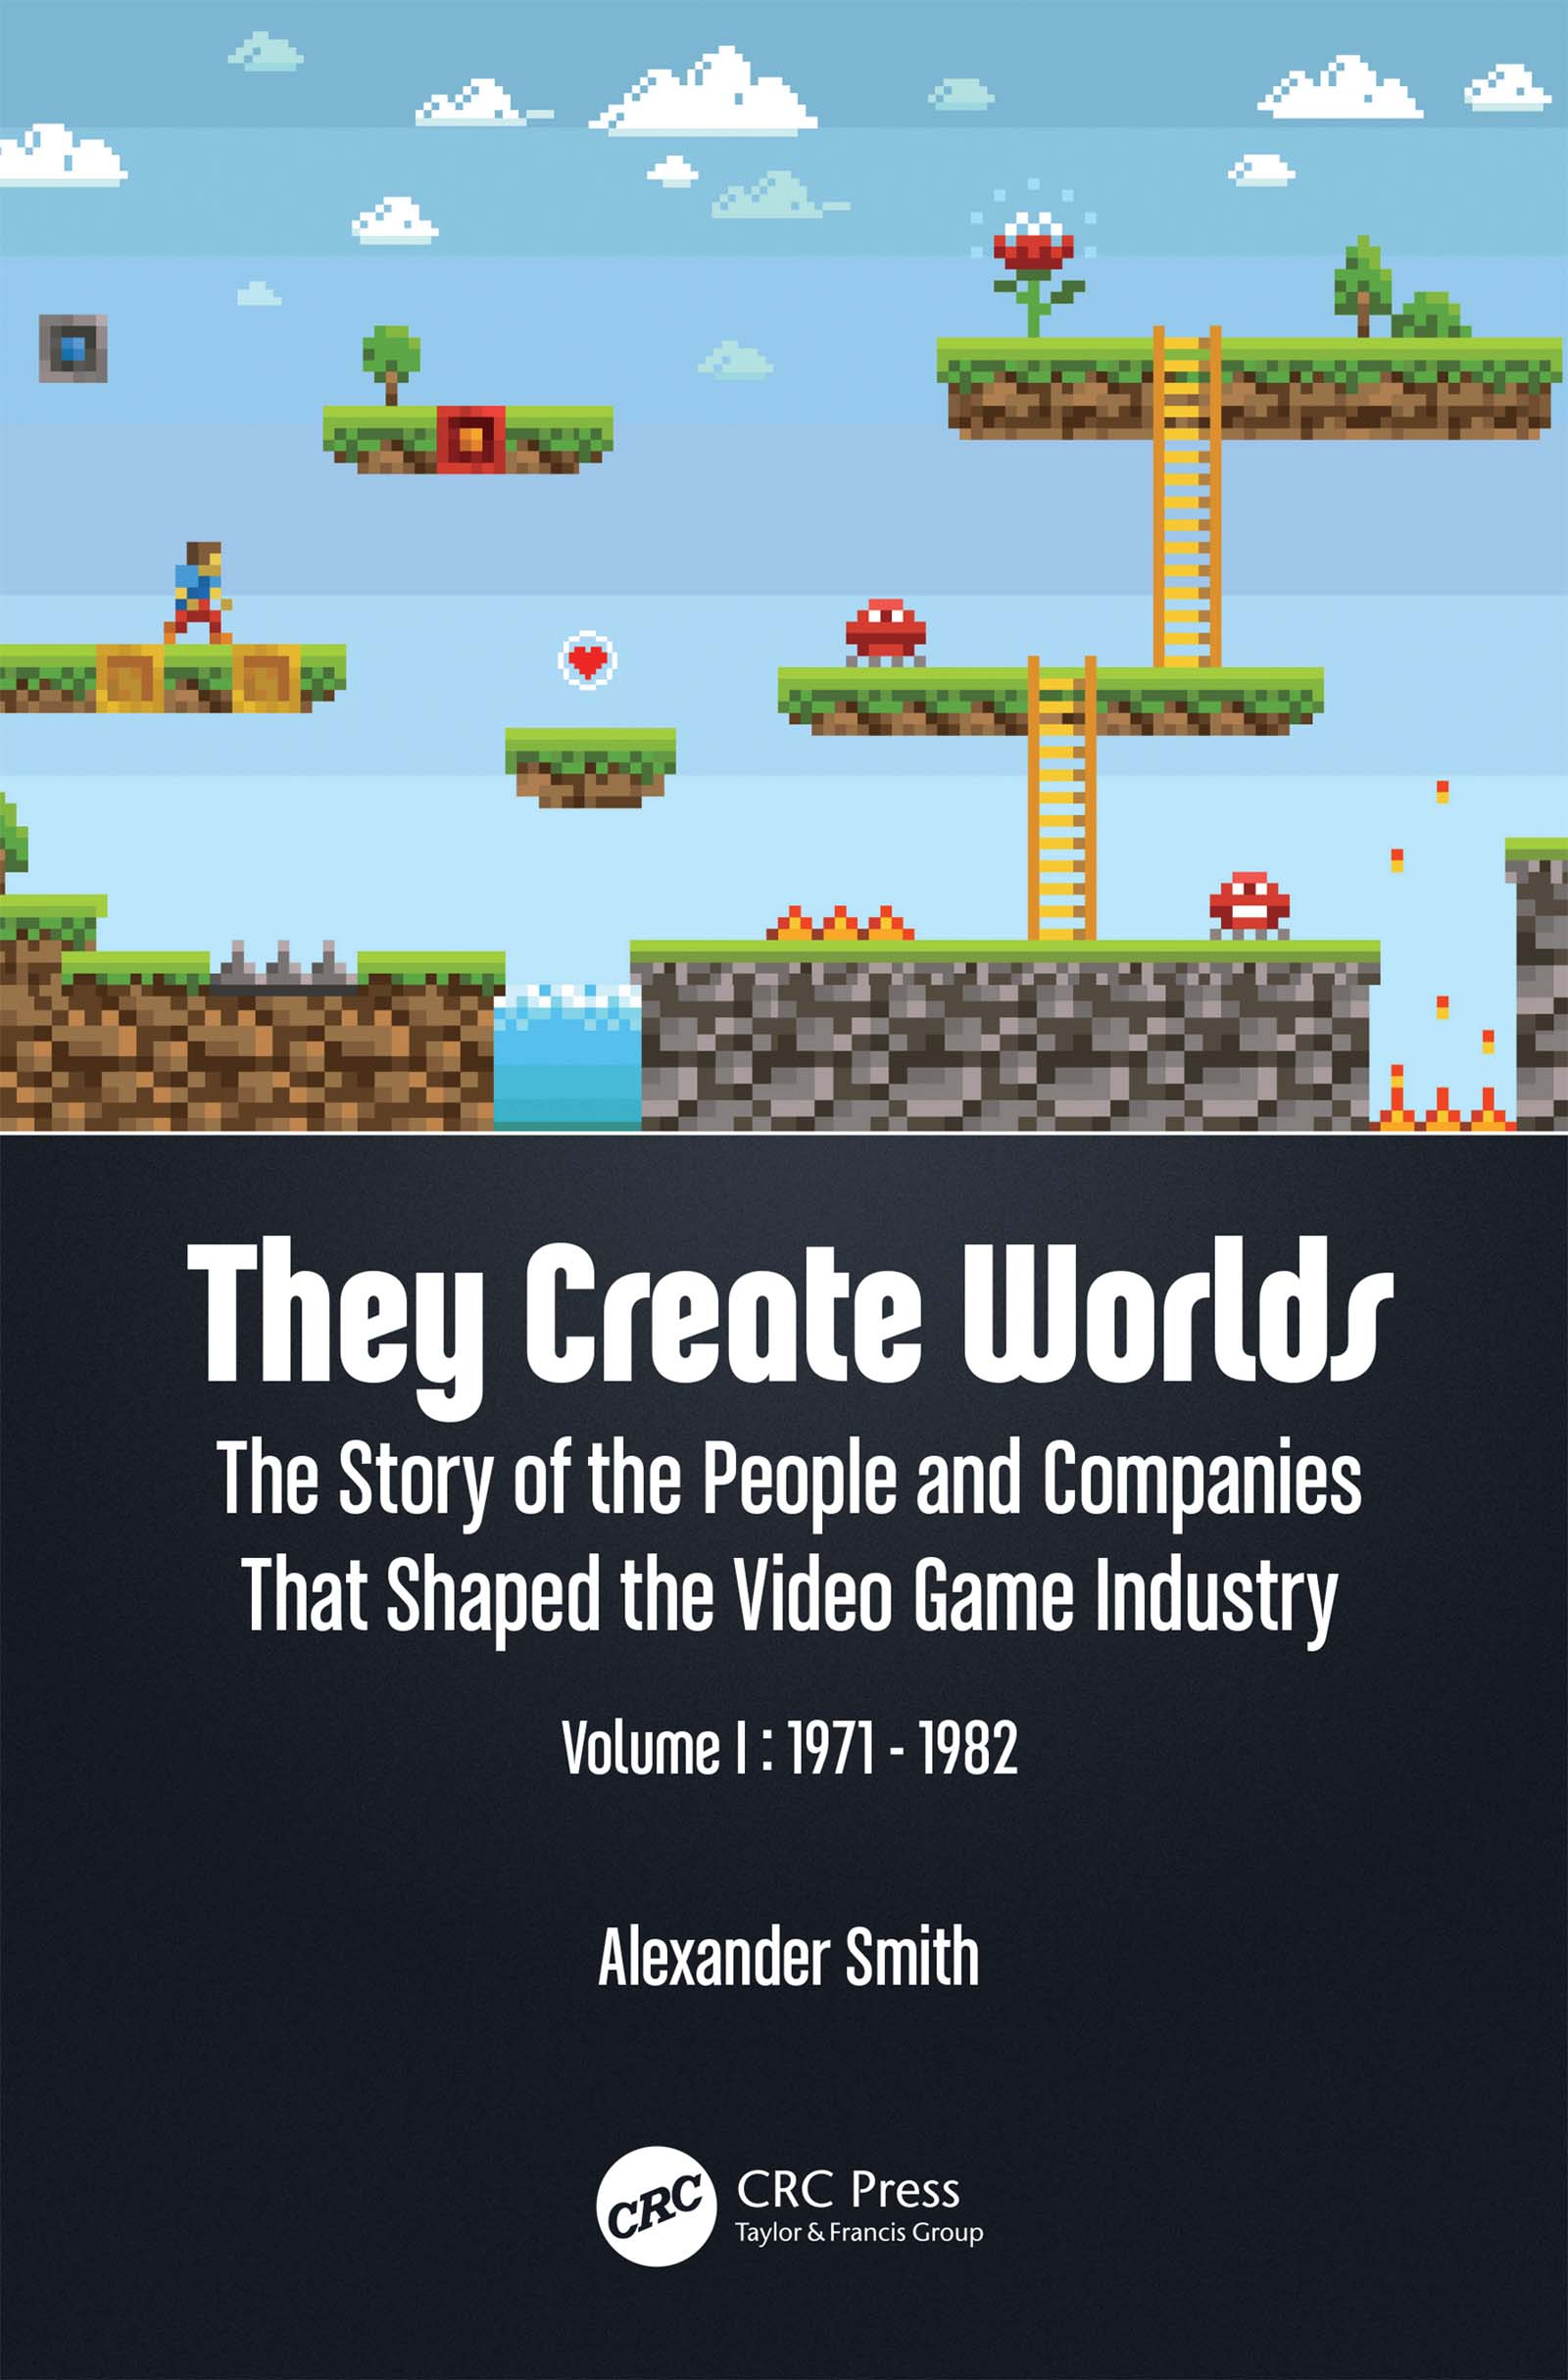 They Create Worlds: The Story of the People and Companies That Shaped the Video Game Industry, Vol. I: 1971-1982 book cover